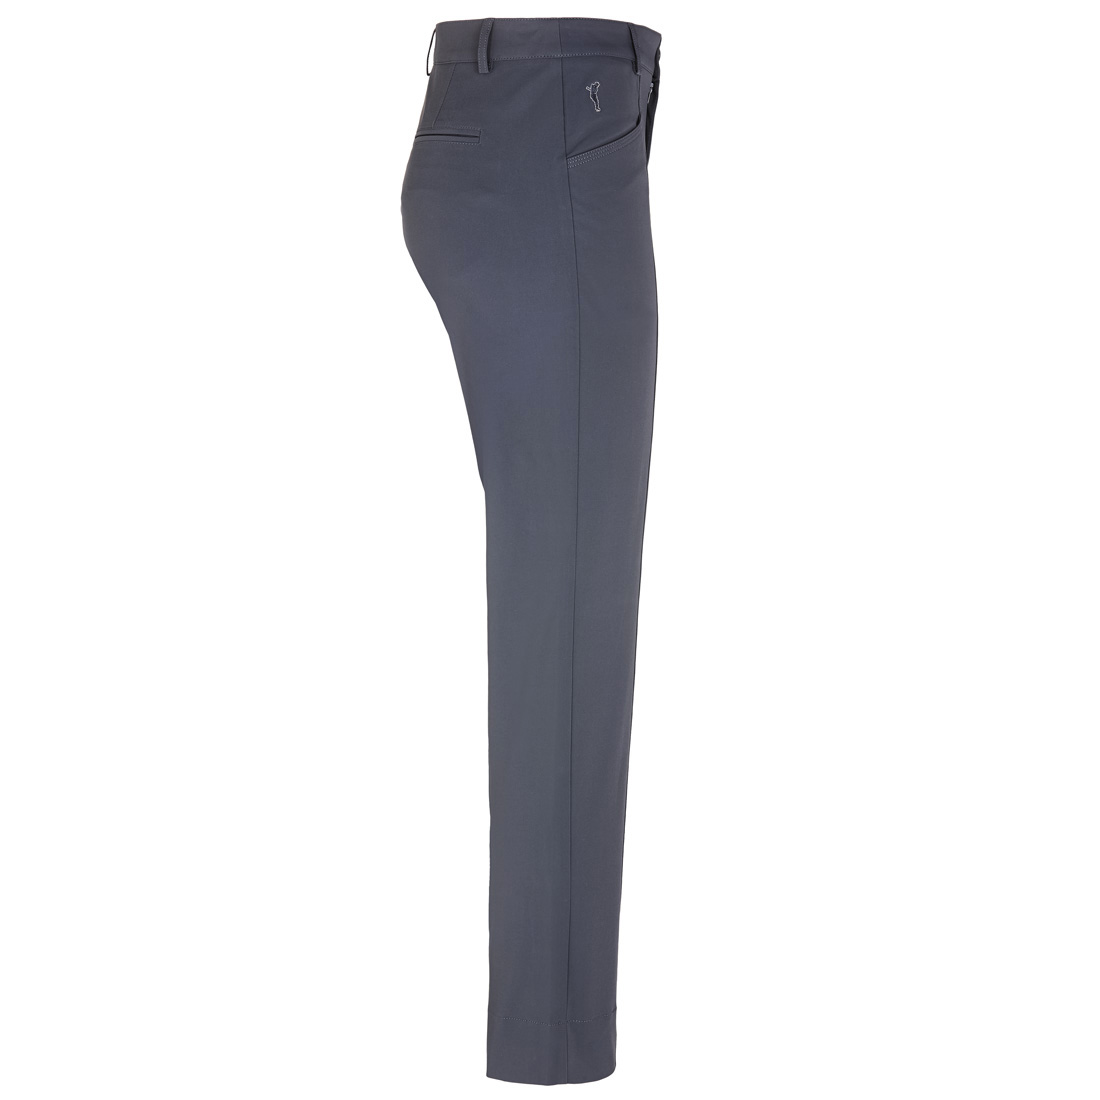 Techno Stretch 7/8 Damen Baumwoll-Golfhose in Slim Fit